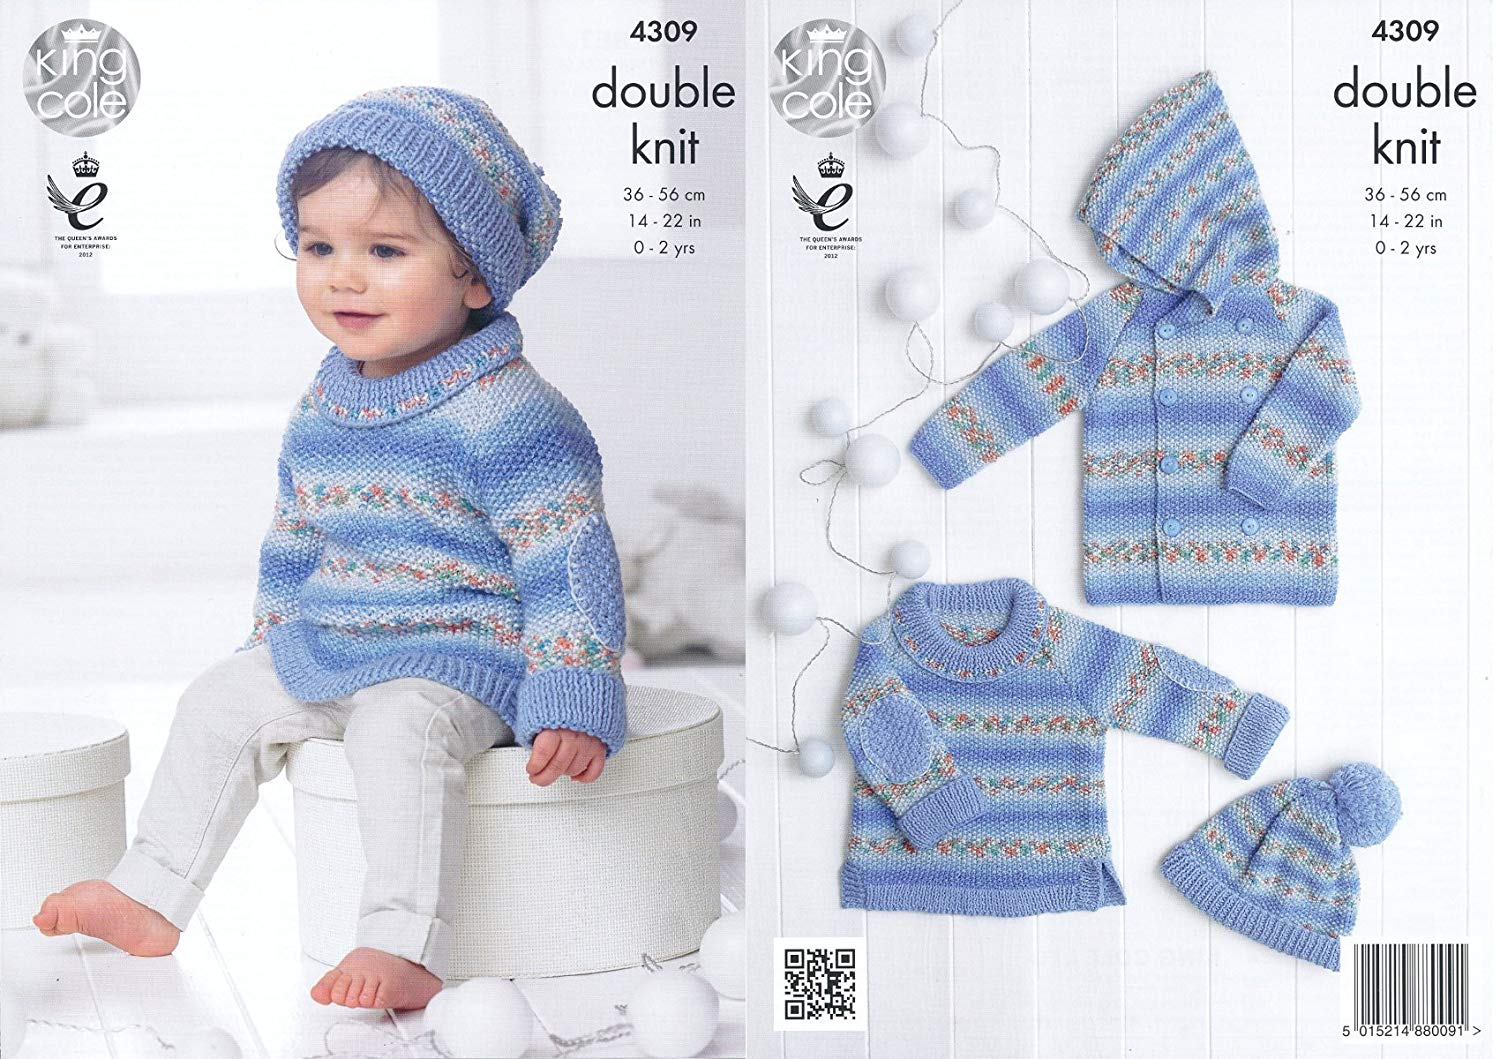 King Cole Double Knitting Pattern Cardigan /& Sweater Selection Melody DK 3842